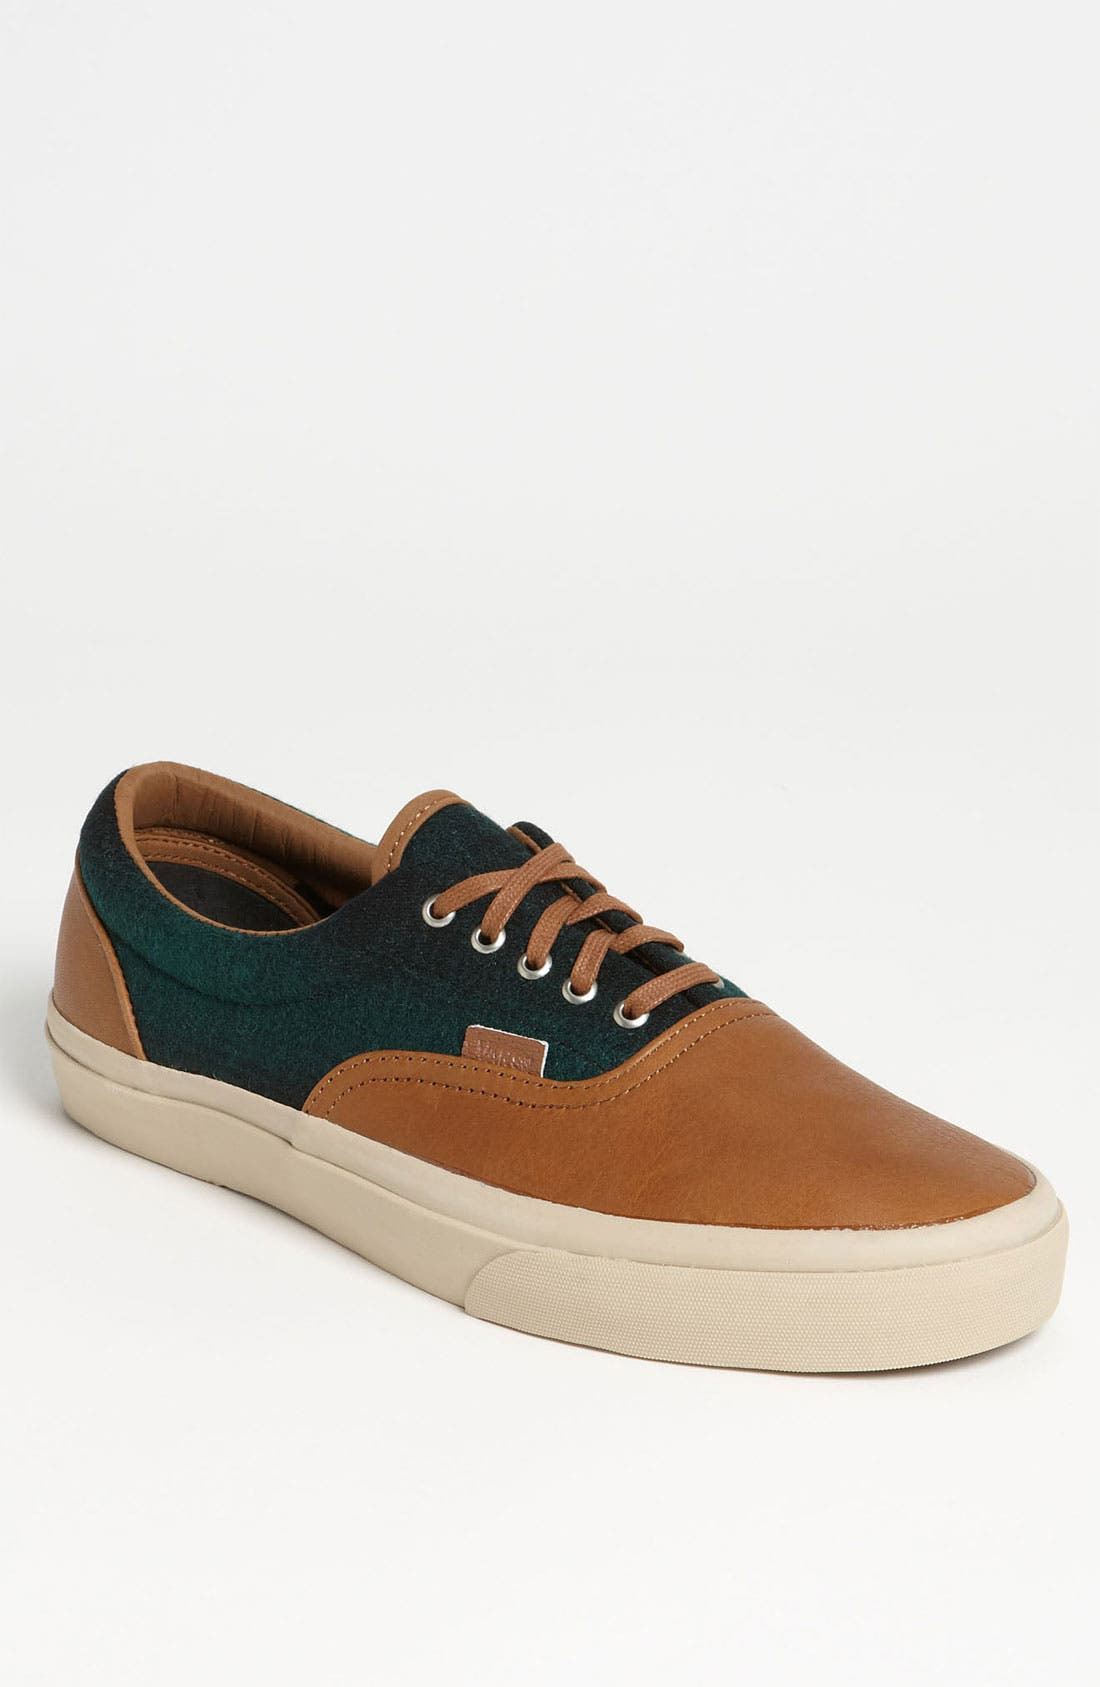 'Cali - Era' Sneaker,                         Main,                         color, Green Flannel